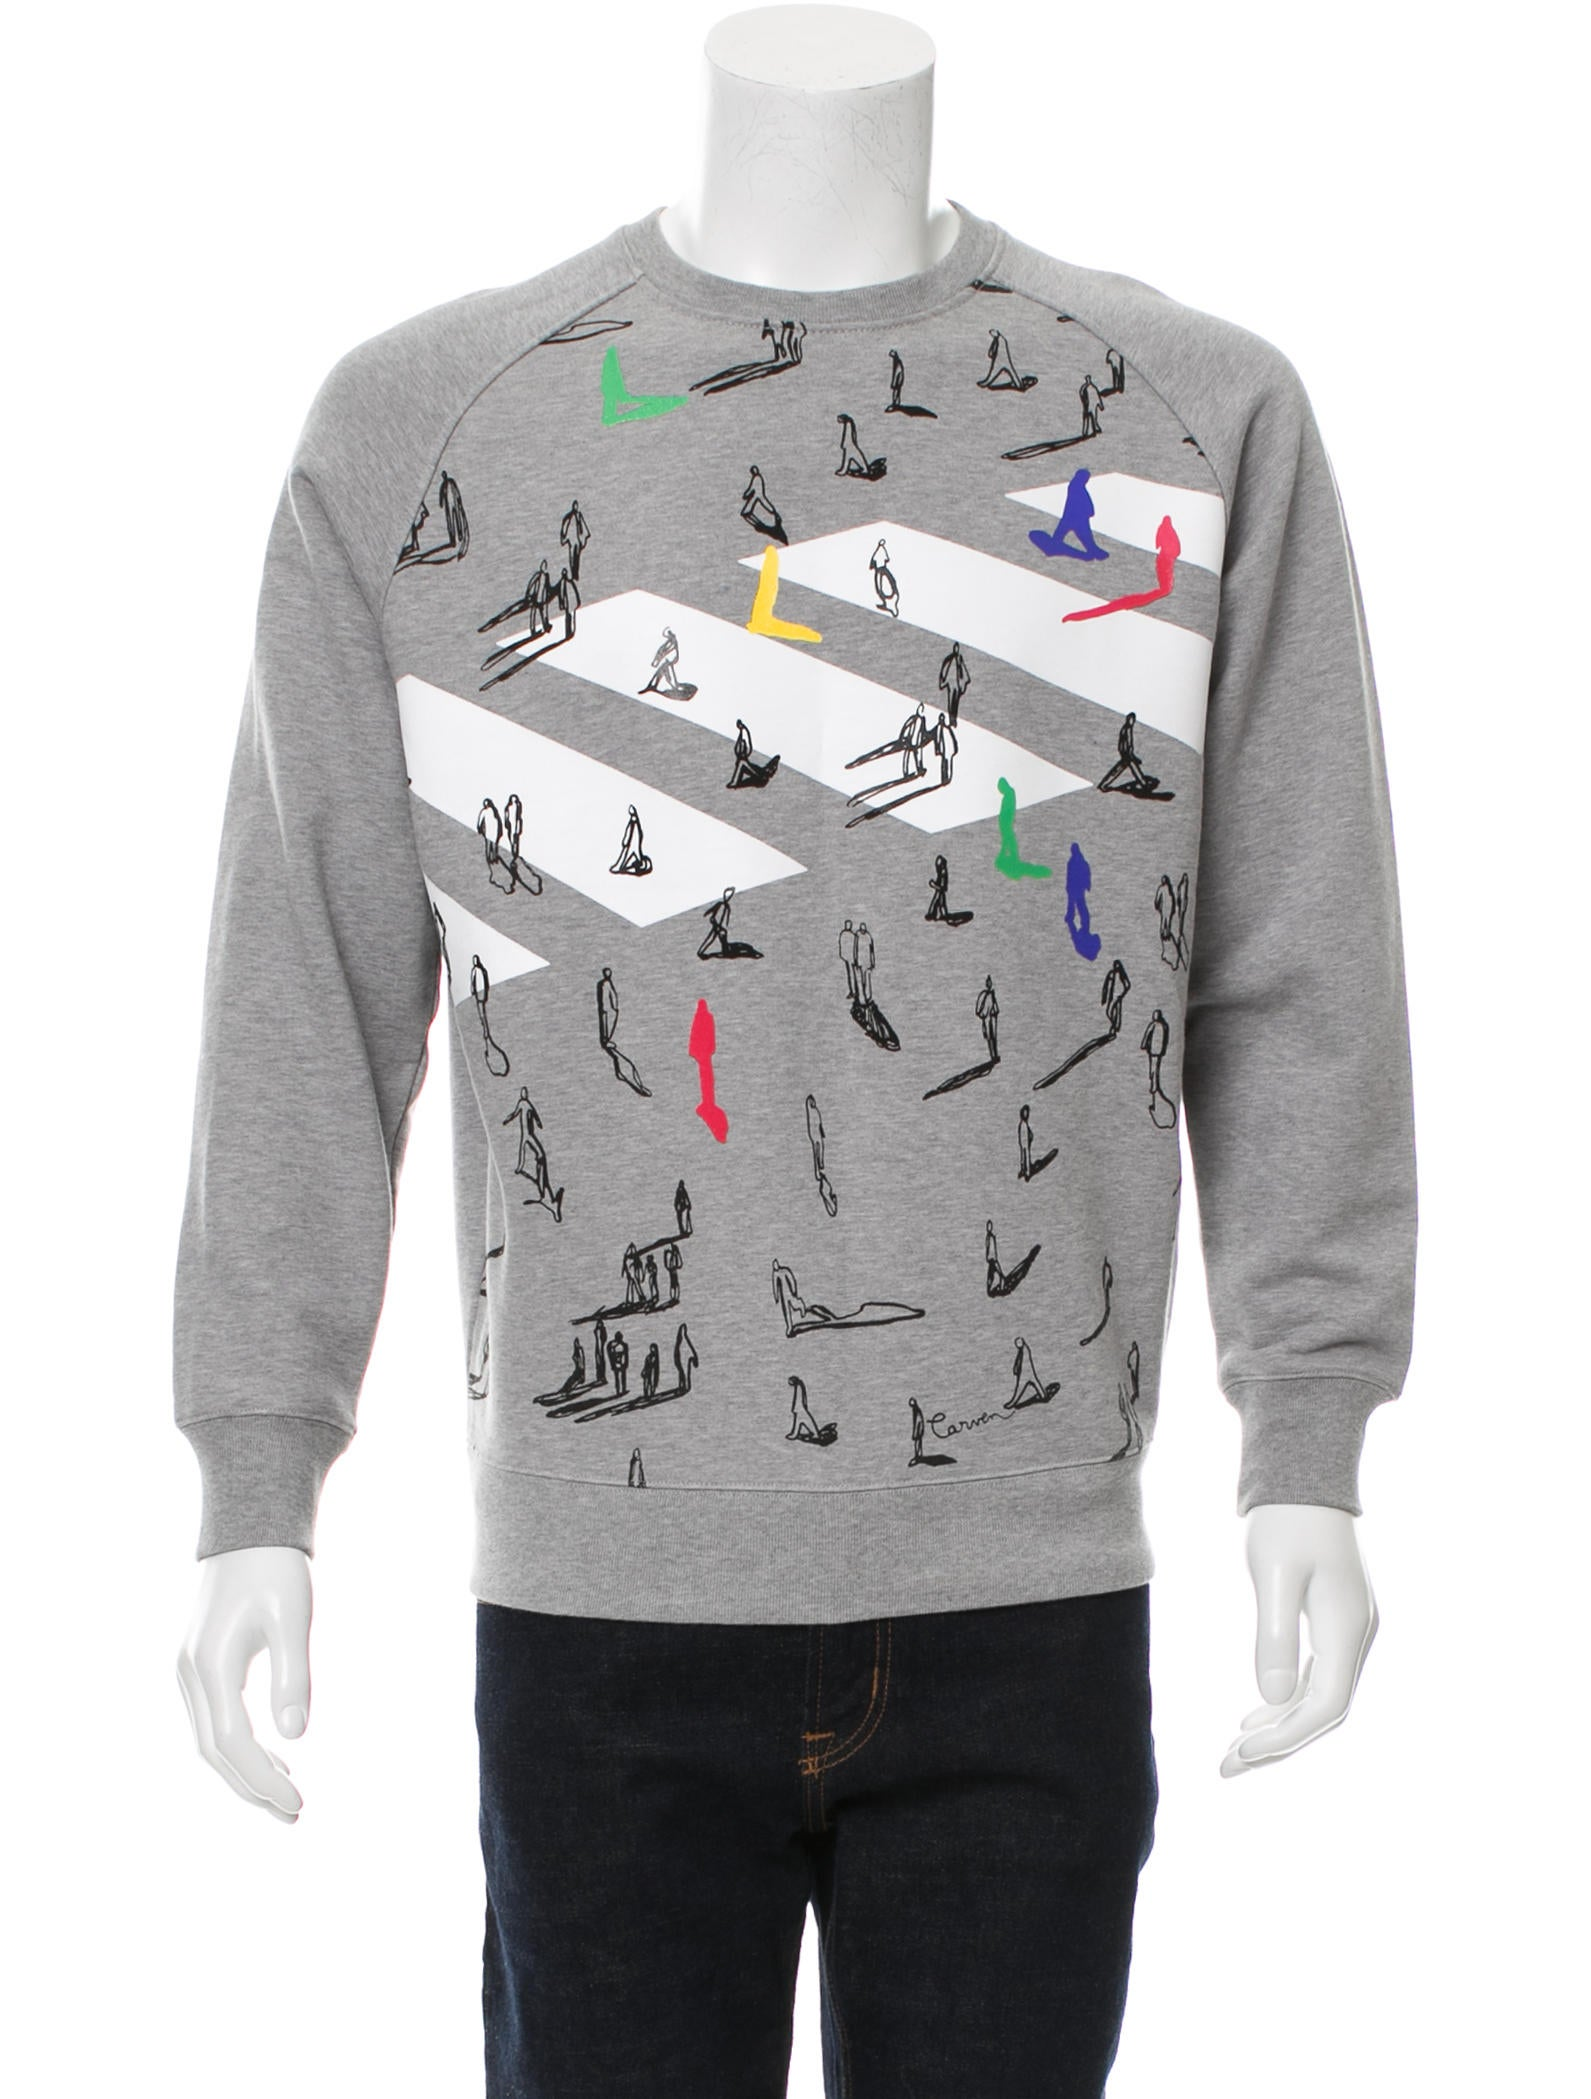 Carven Graphic Crew Neck Sweatshirt Clothing Cav26244 The Realreal